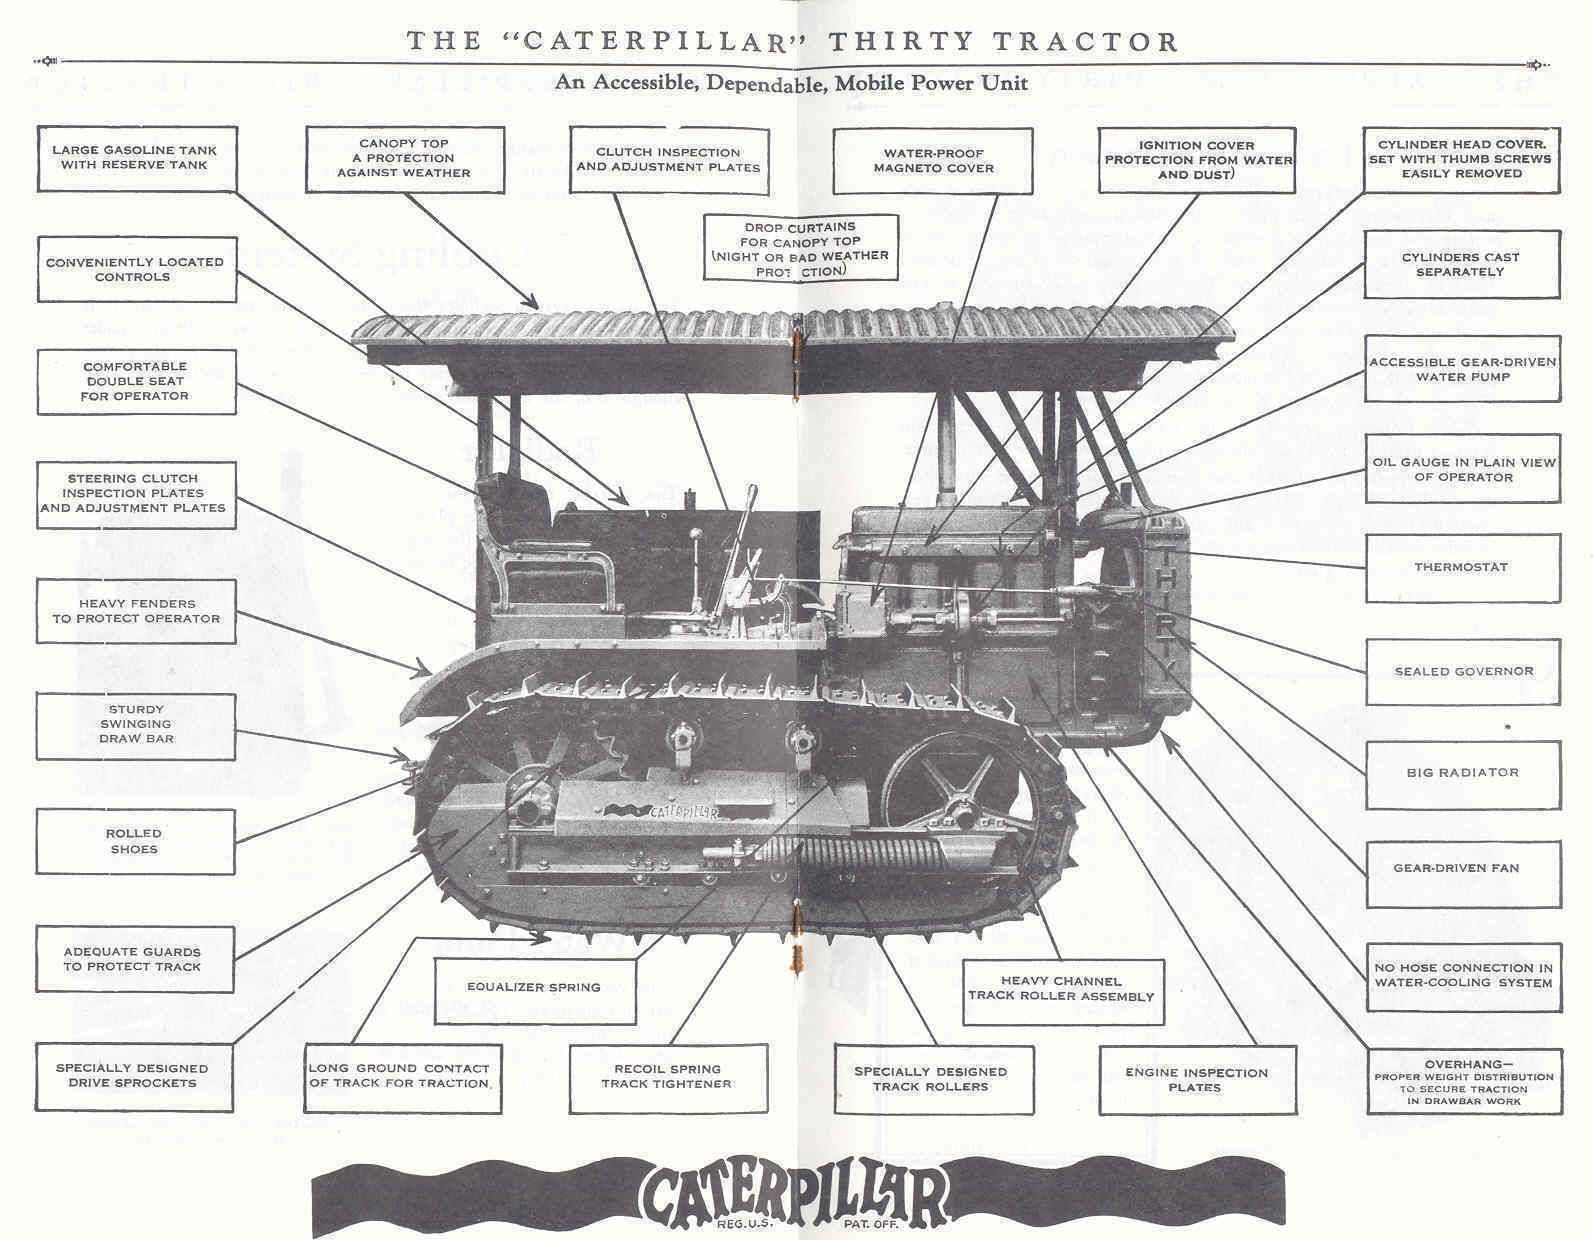 Caterpillar Thirty Tractor reprint • AUD 11 00 - PicClick AU